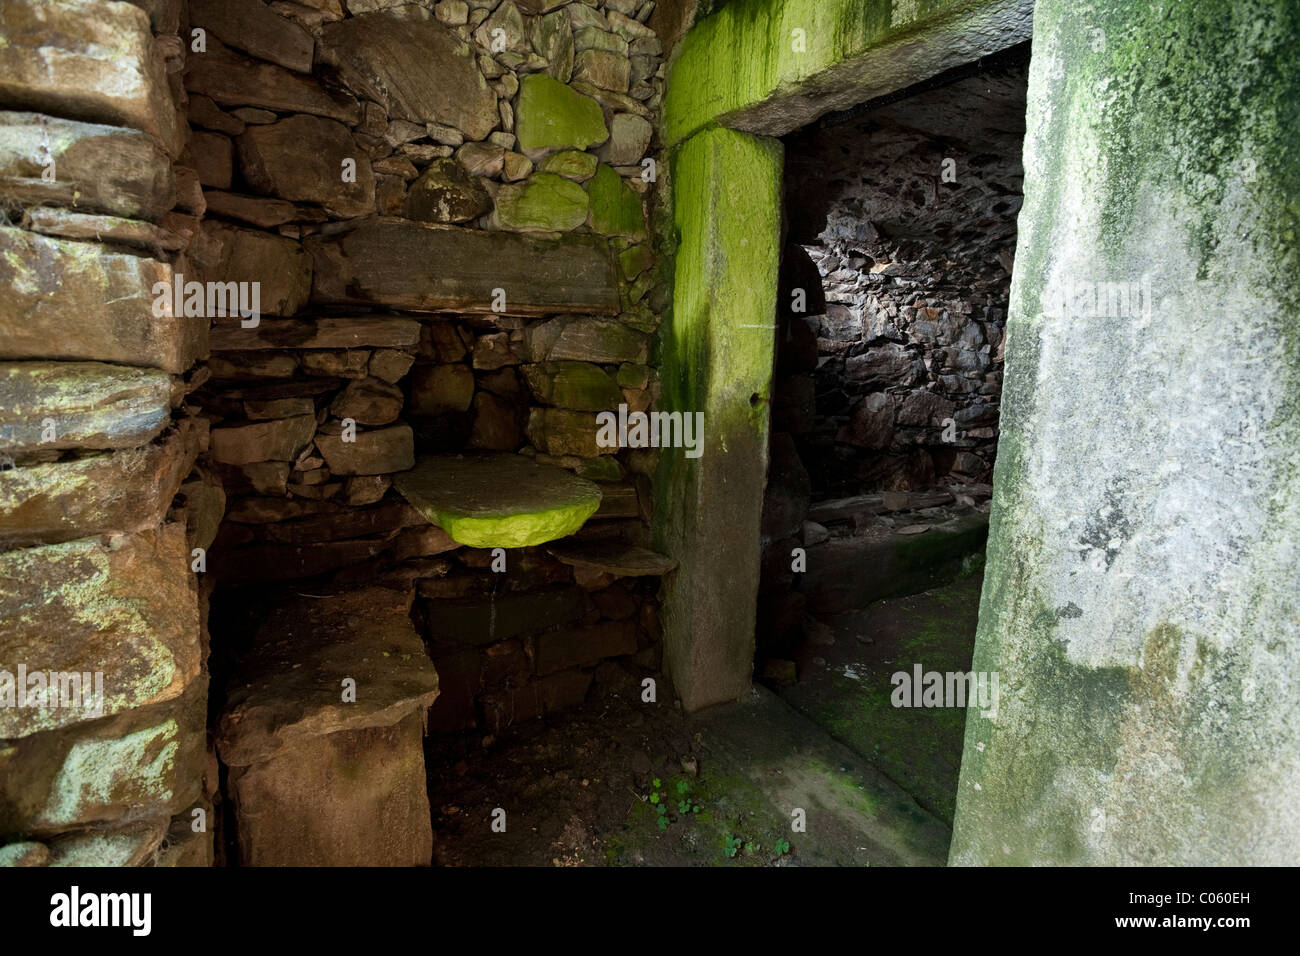 A damp, dark grotto or cellar of an abandoned house in Switzerland. - Stock Image